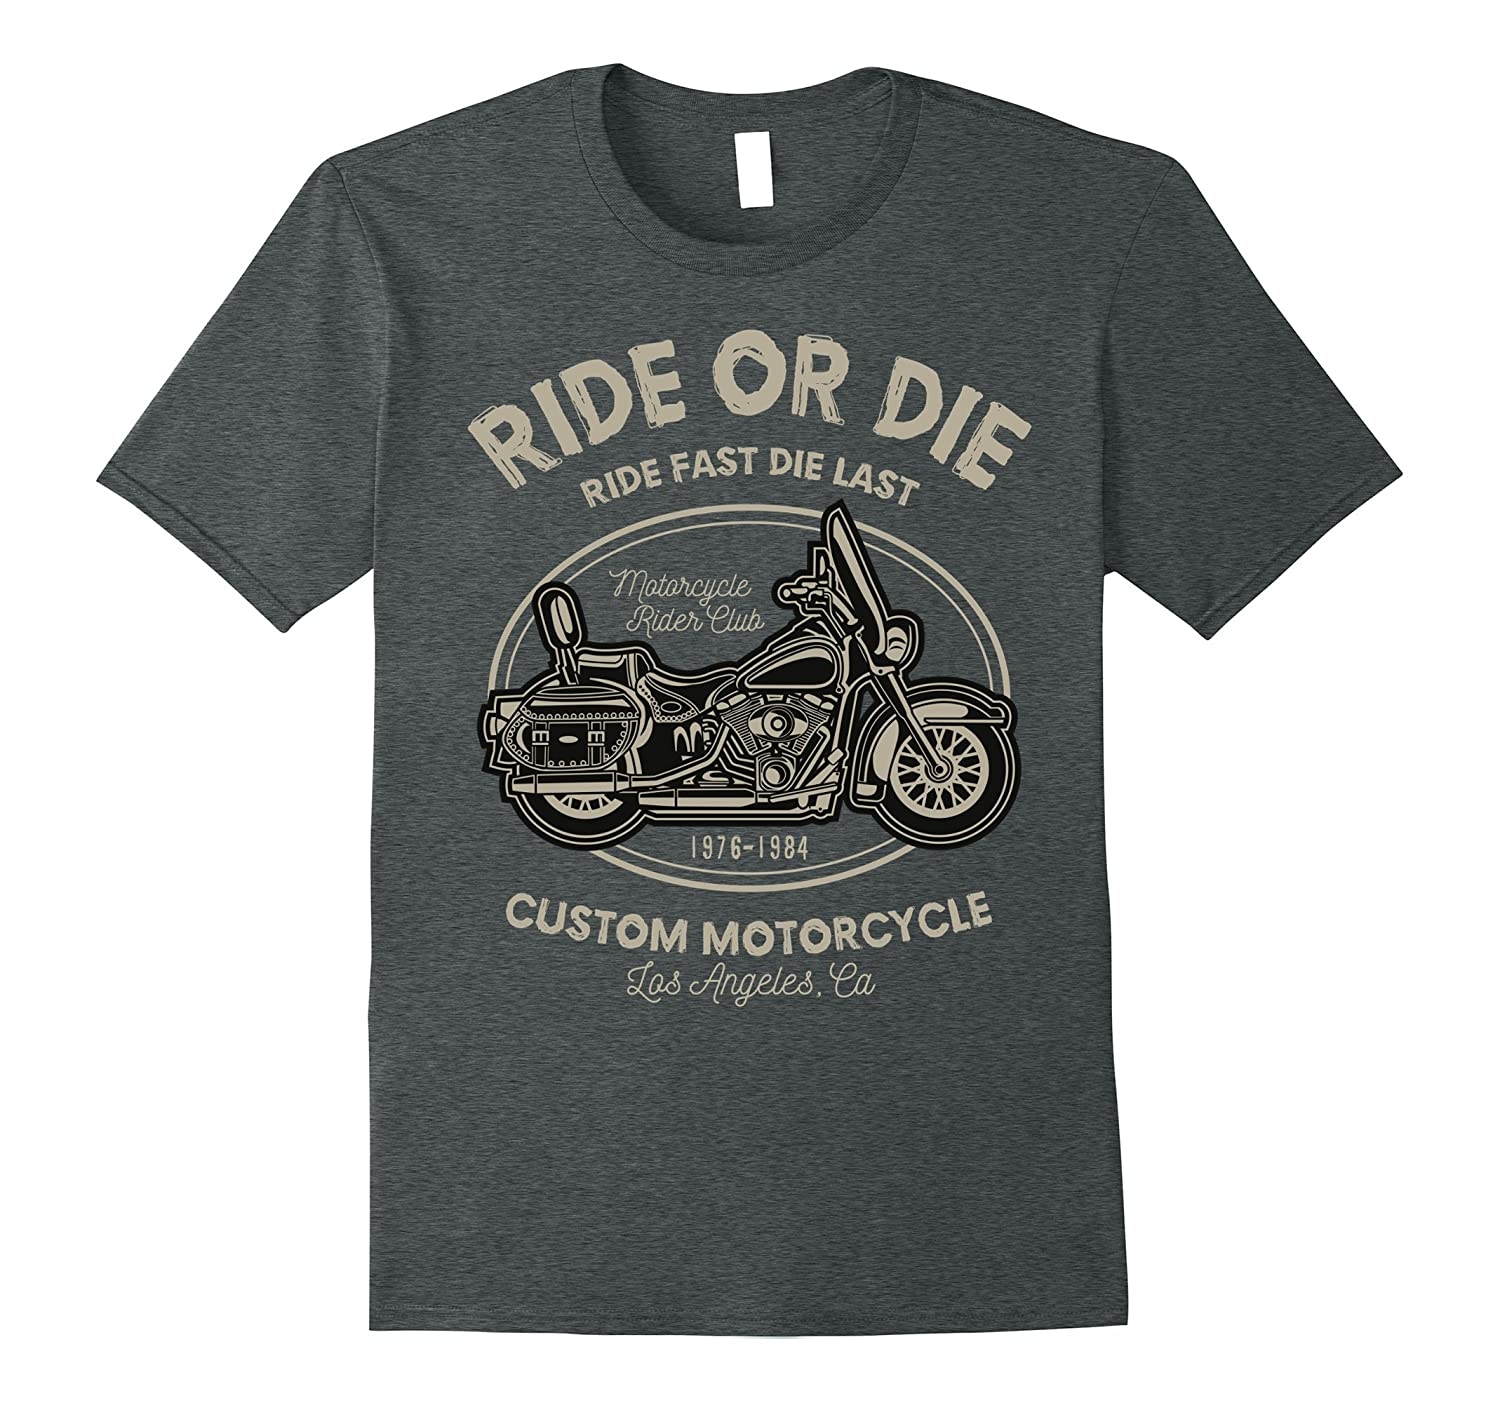 ff4f35143 Mens Custom motorcycle T Shirts Design sayings ride or die-ANZ ...